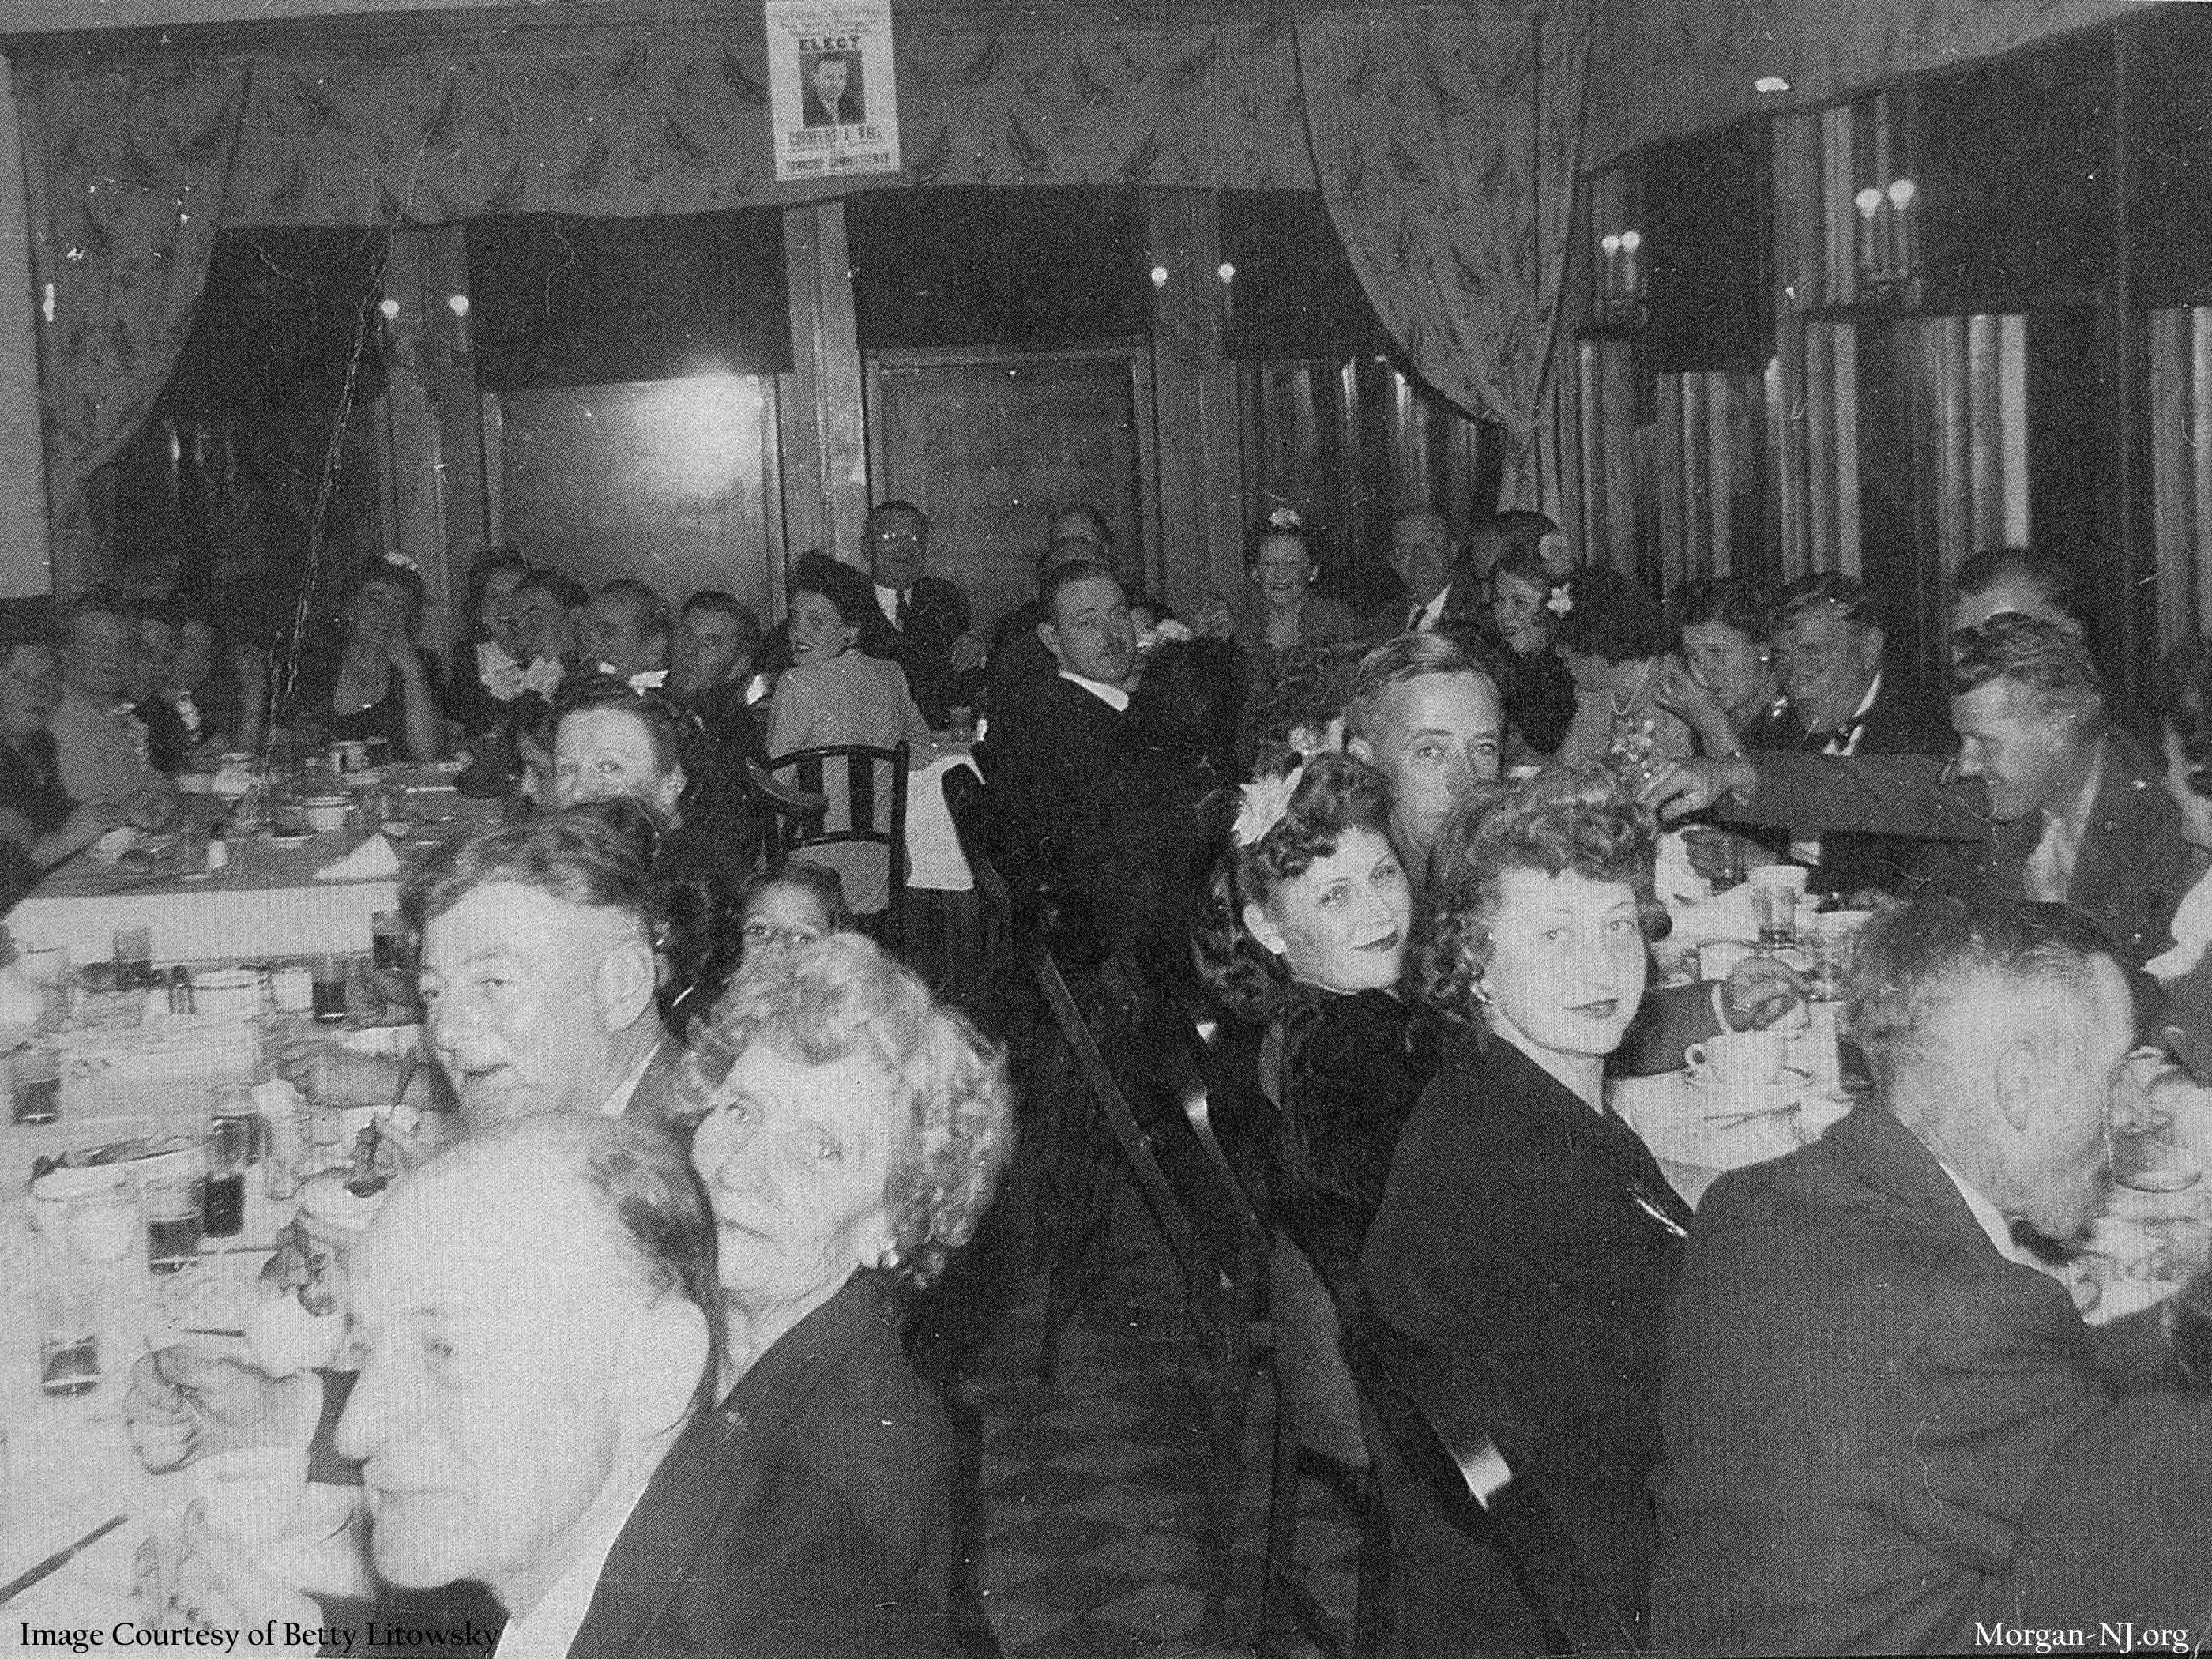 Political dinner for Commissioner C. Wall in the upstairs back dining room of the Robert E. Lee Inn, circa 1945. Image courtesy of Betty Macrae Litowsky.